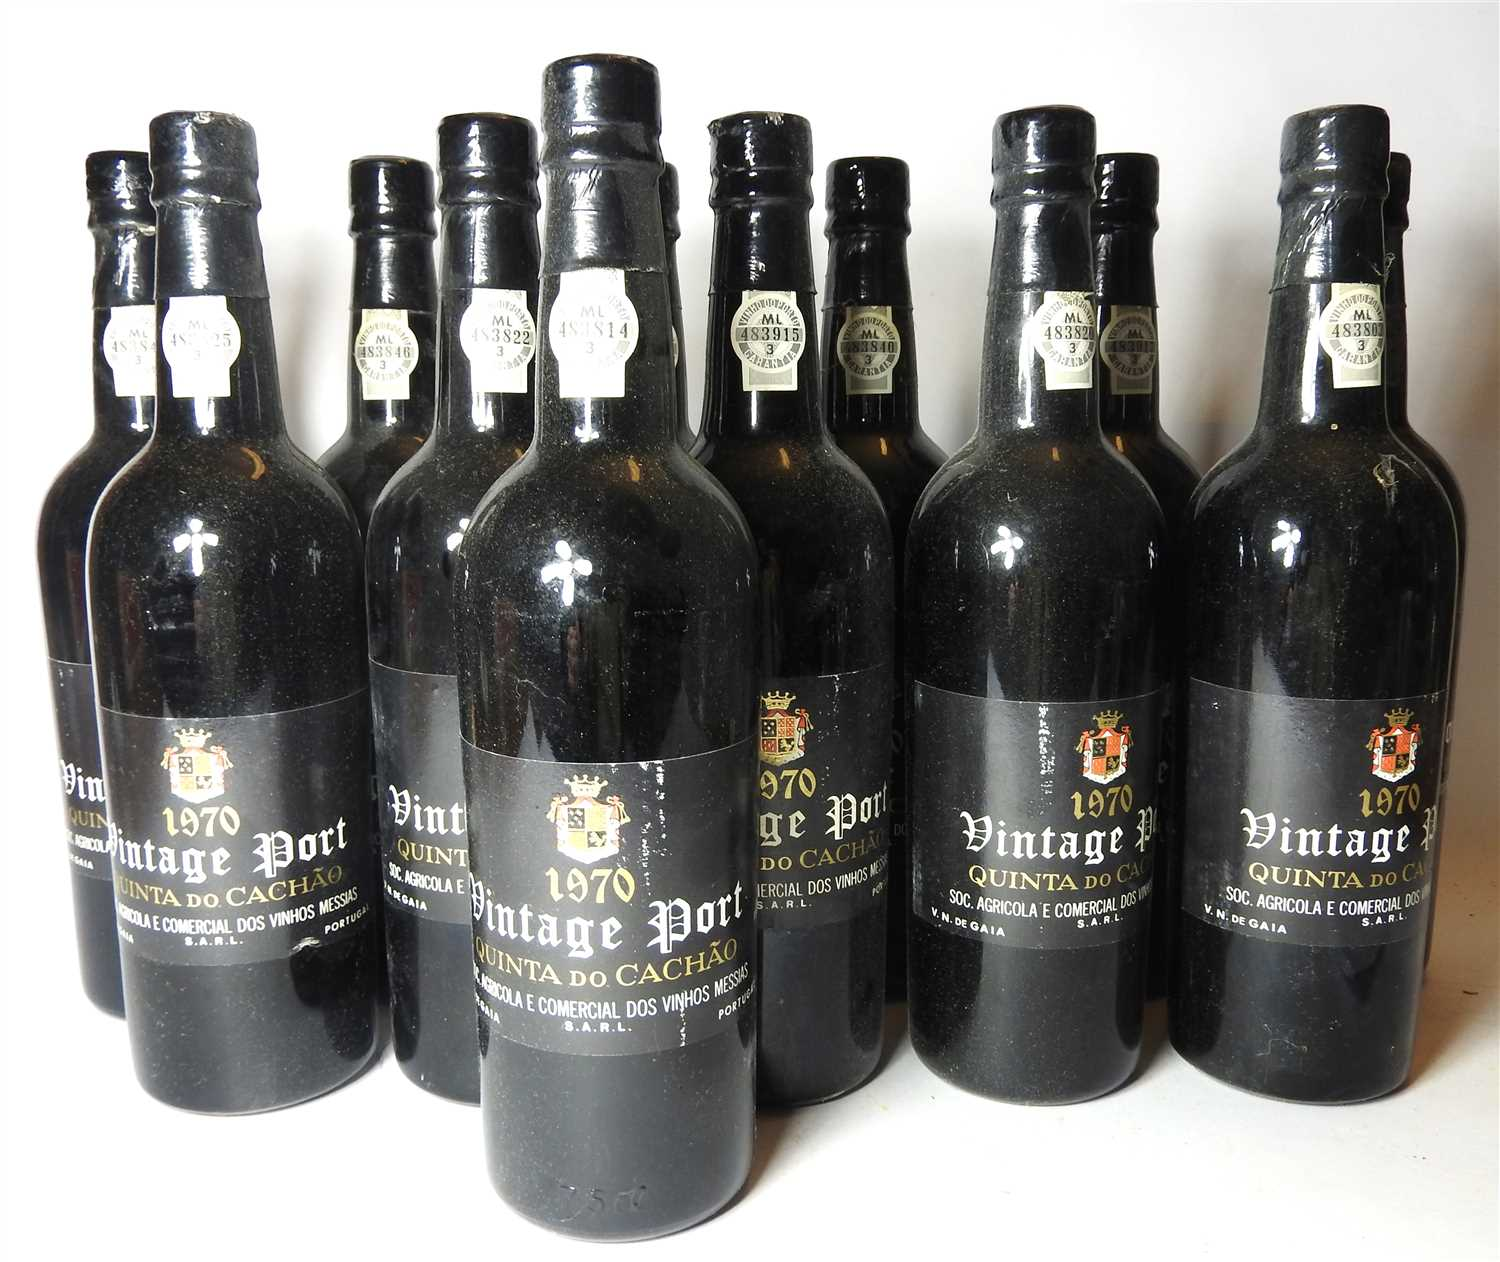 Lot 68 - Quinta do Cach?o, 1970, twelve bottles